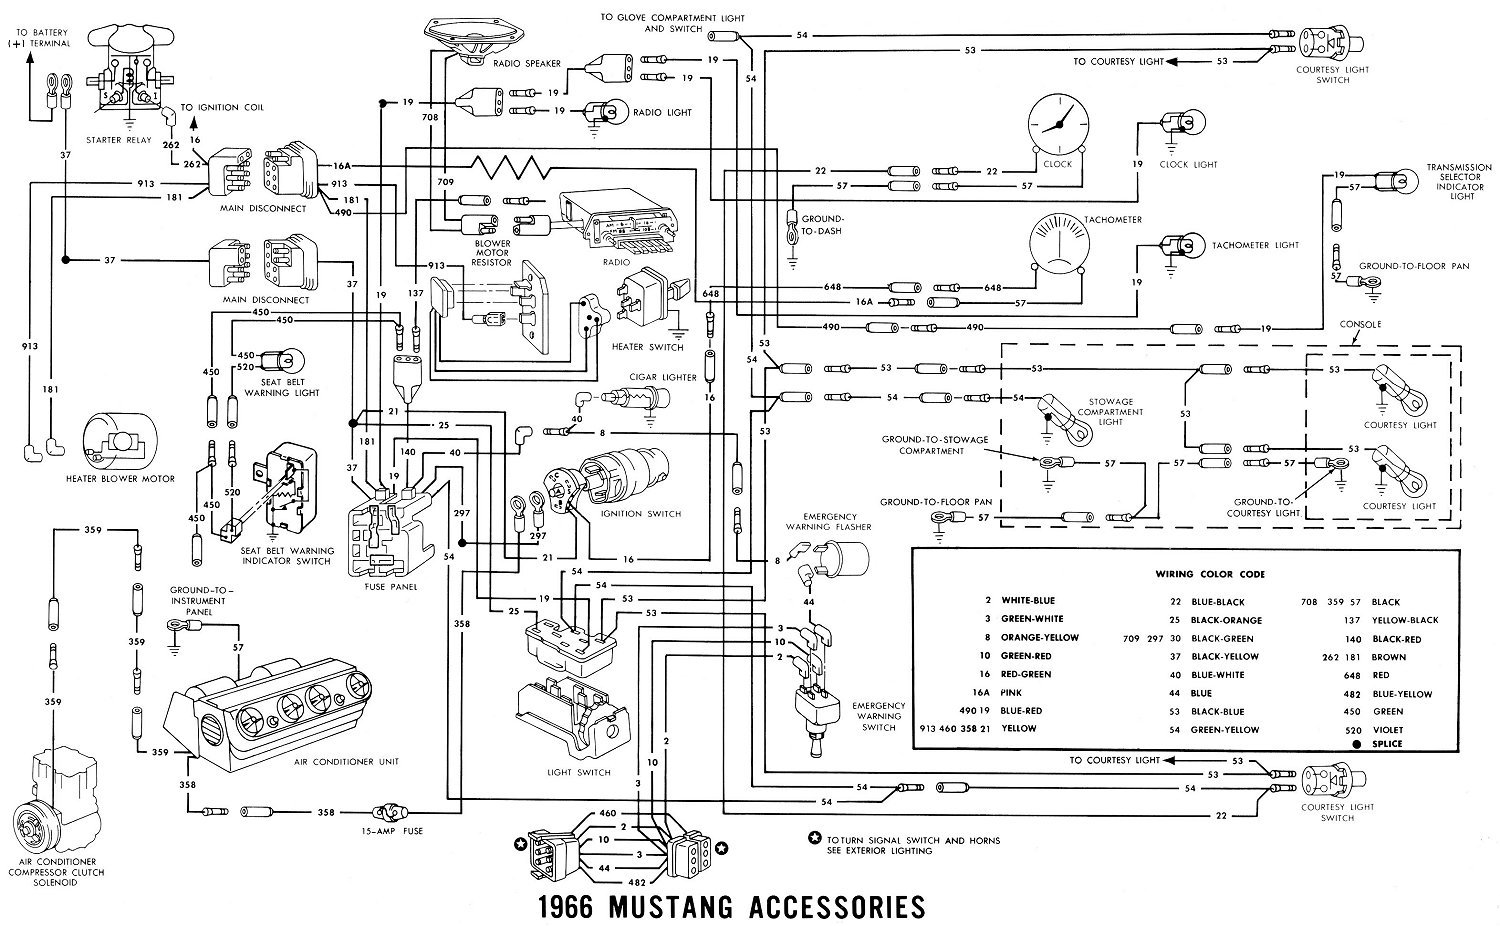 70 Ford Mustang Electrical Diagram | Wiring Diagrams  Cougar Wiring Harness Diagram on